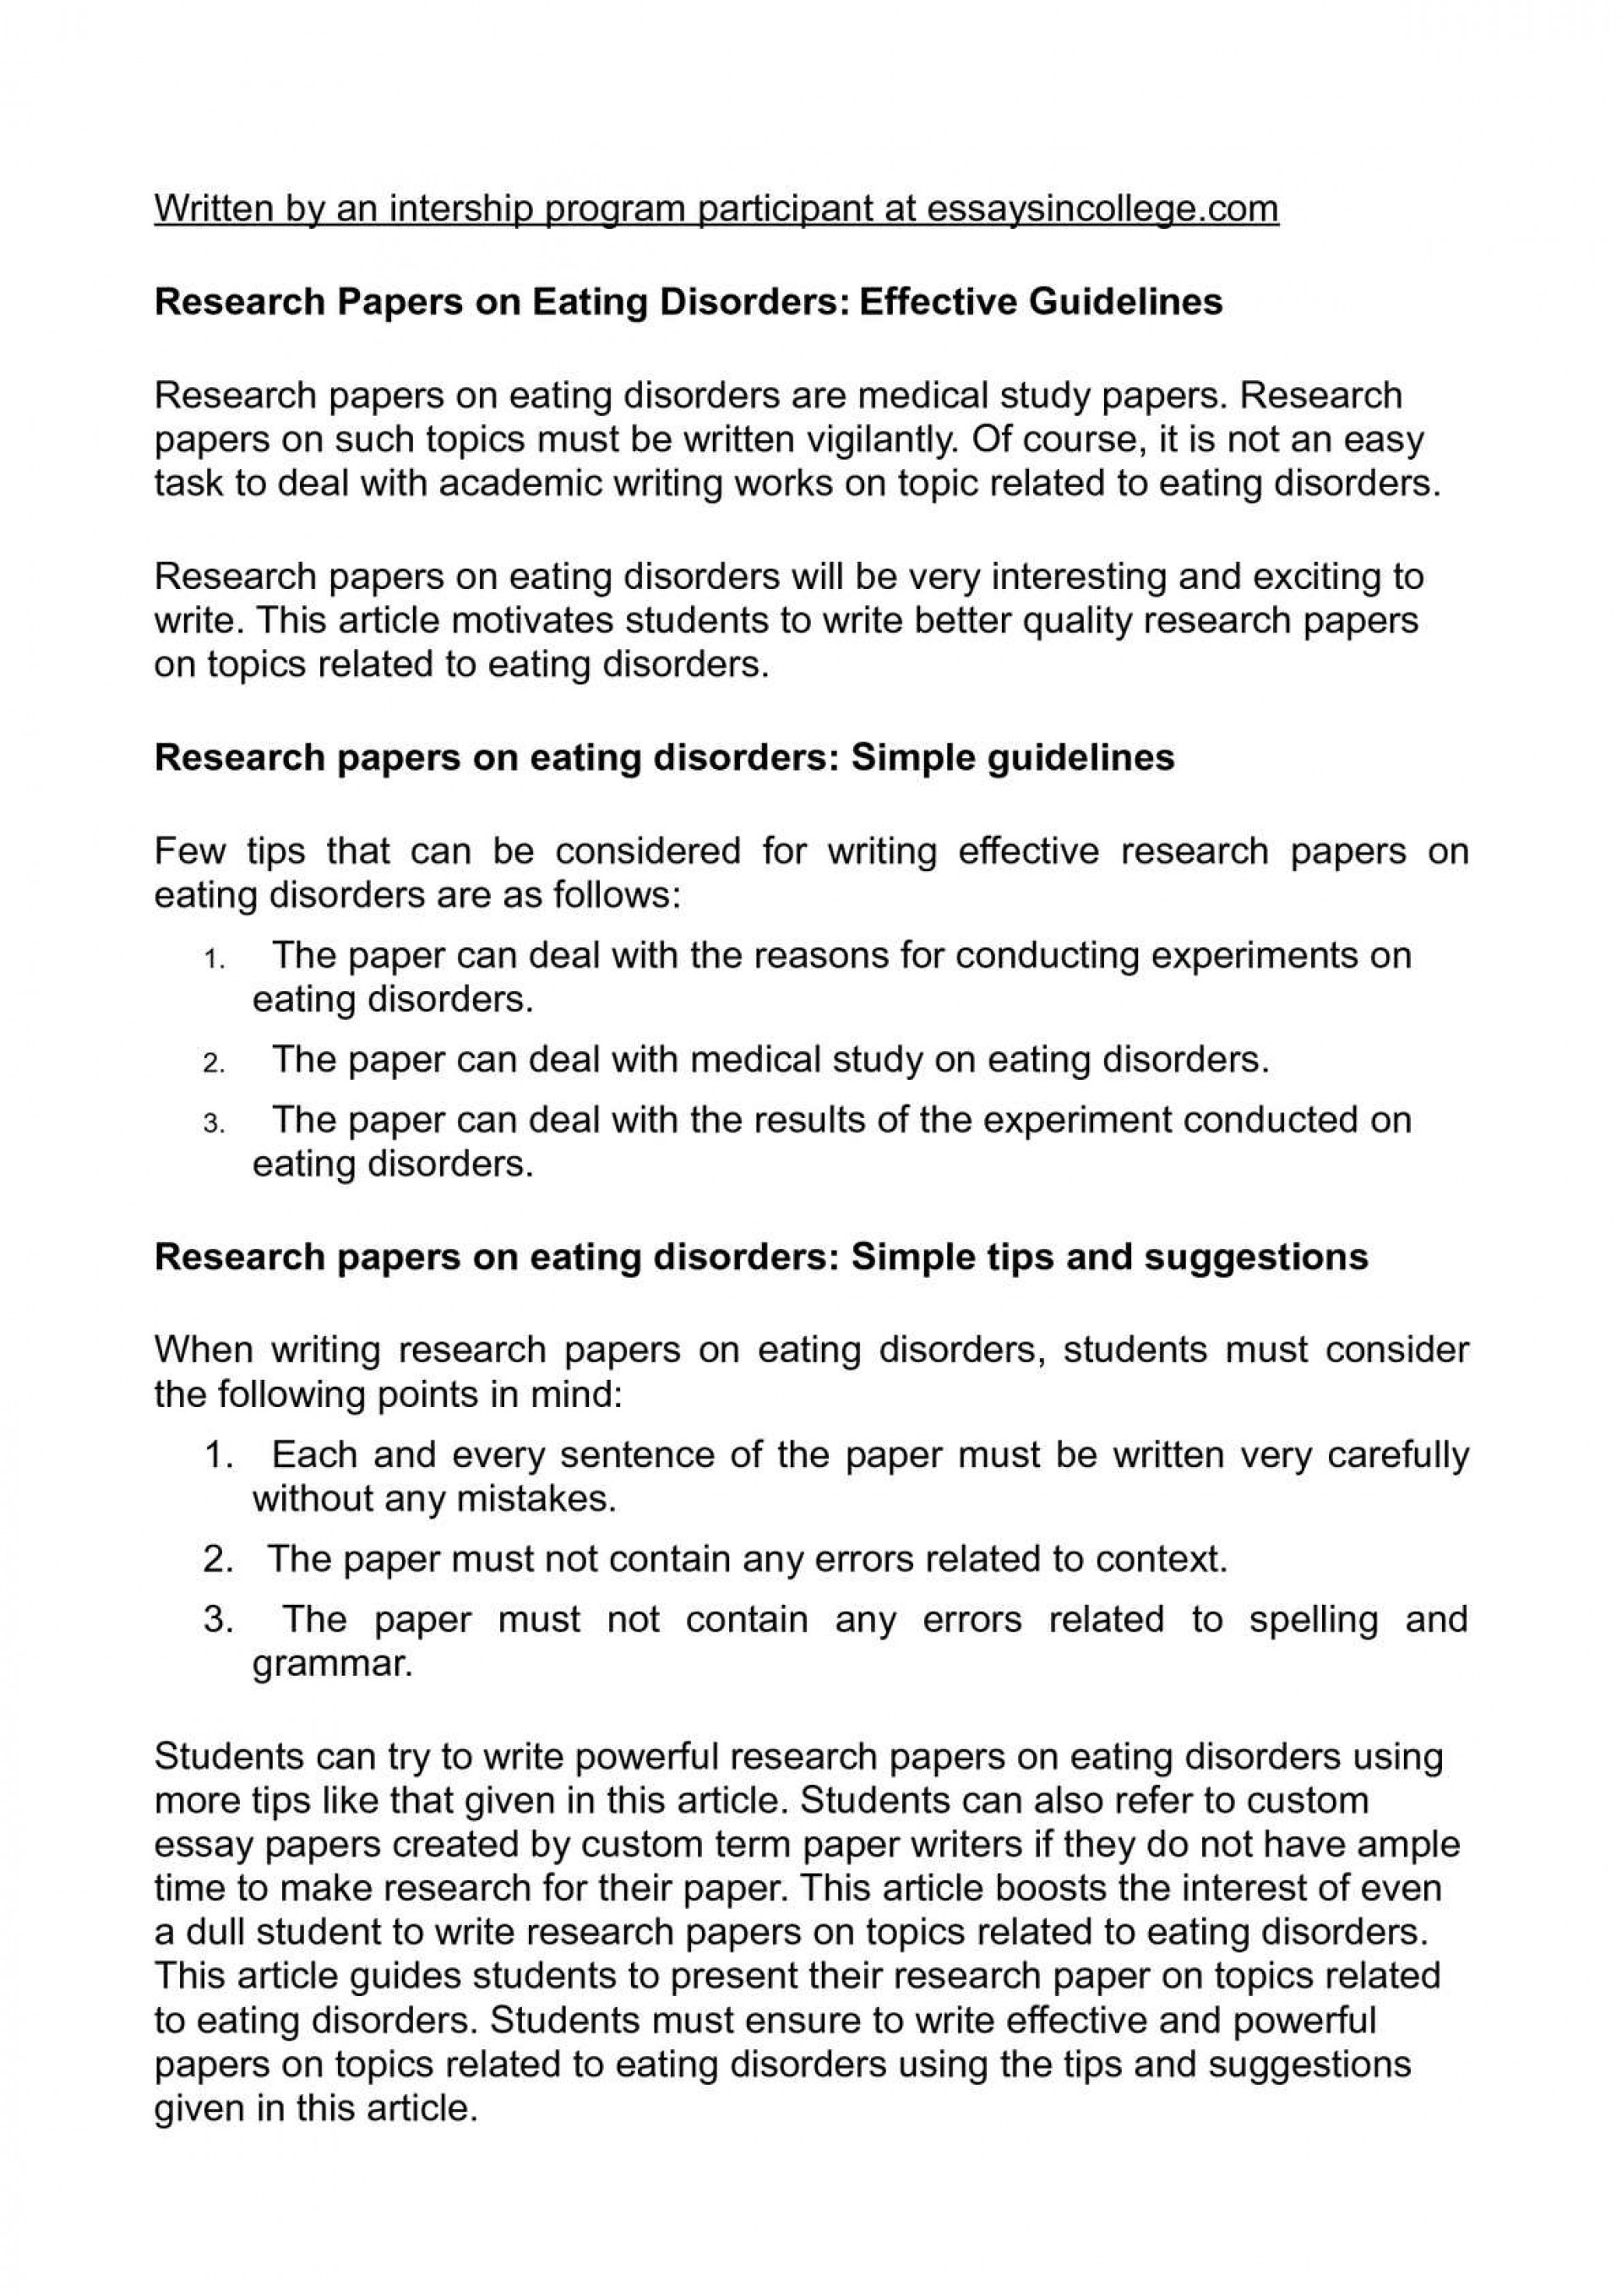 018 Research Paper On Eating Disorders Wonderful Topics Articles And The Media 1920